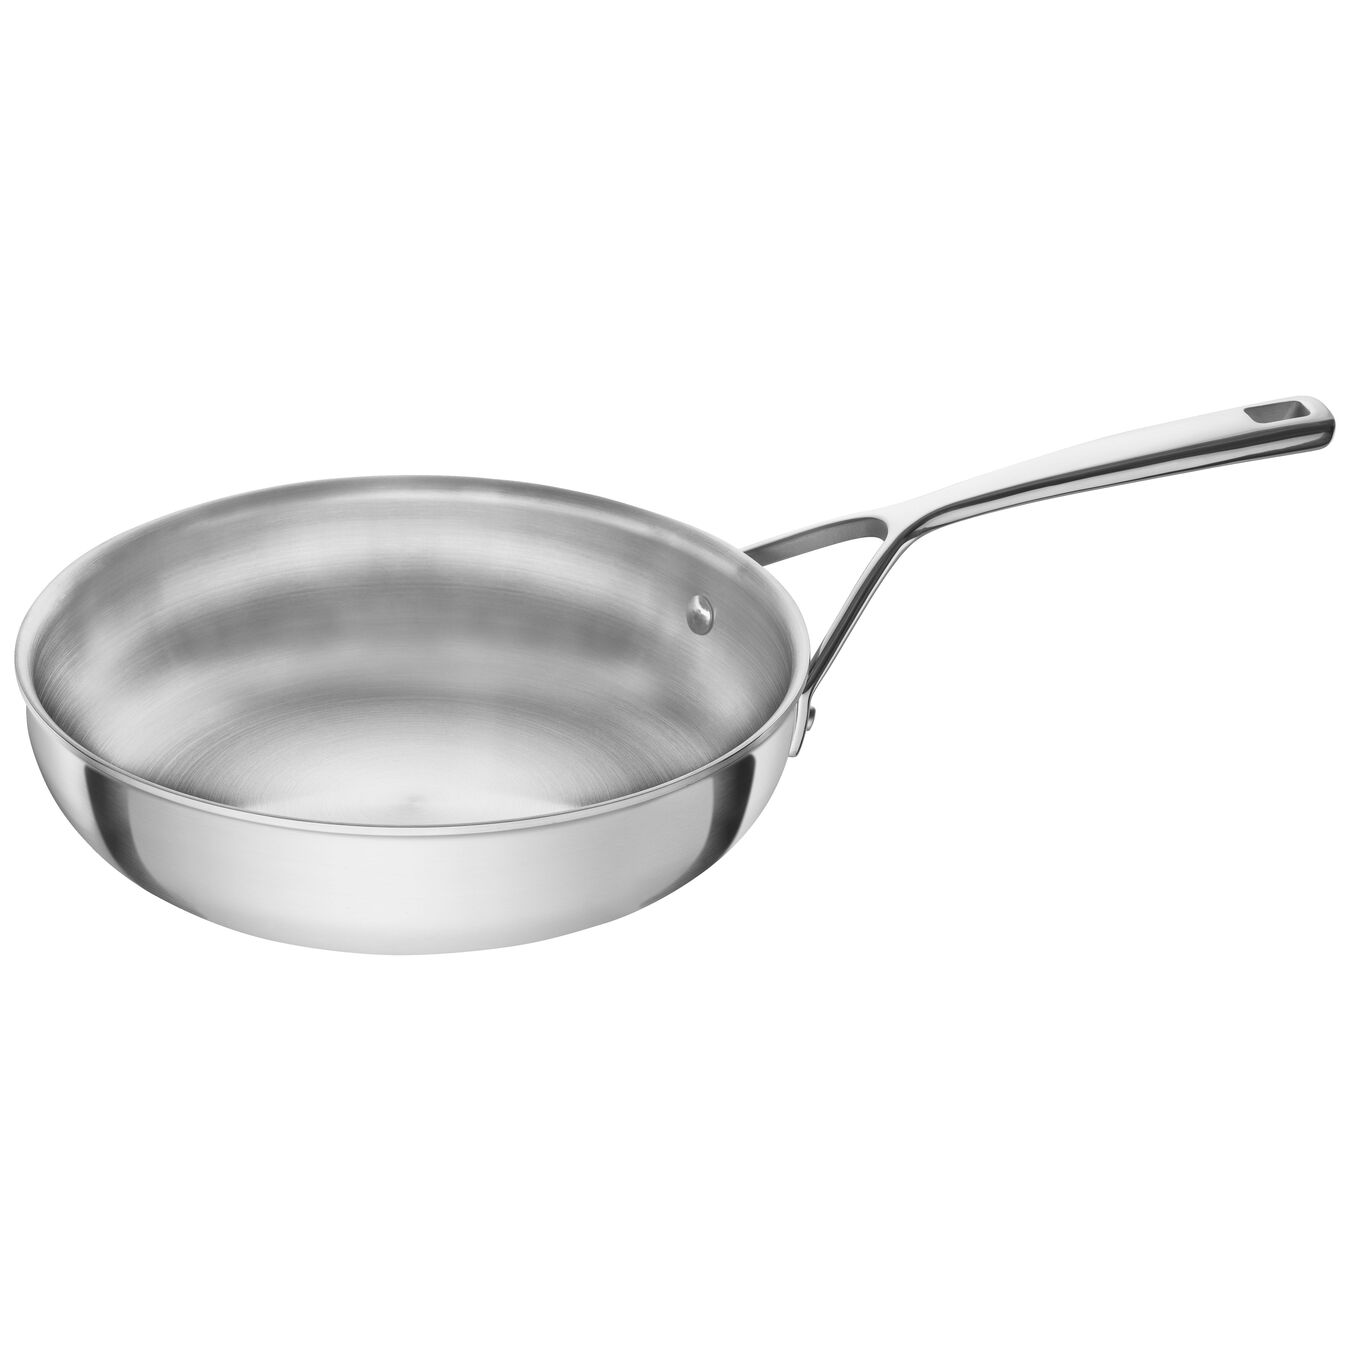 Stainless Steel 9.5-inch Fry Pan,,large 1